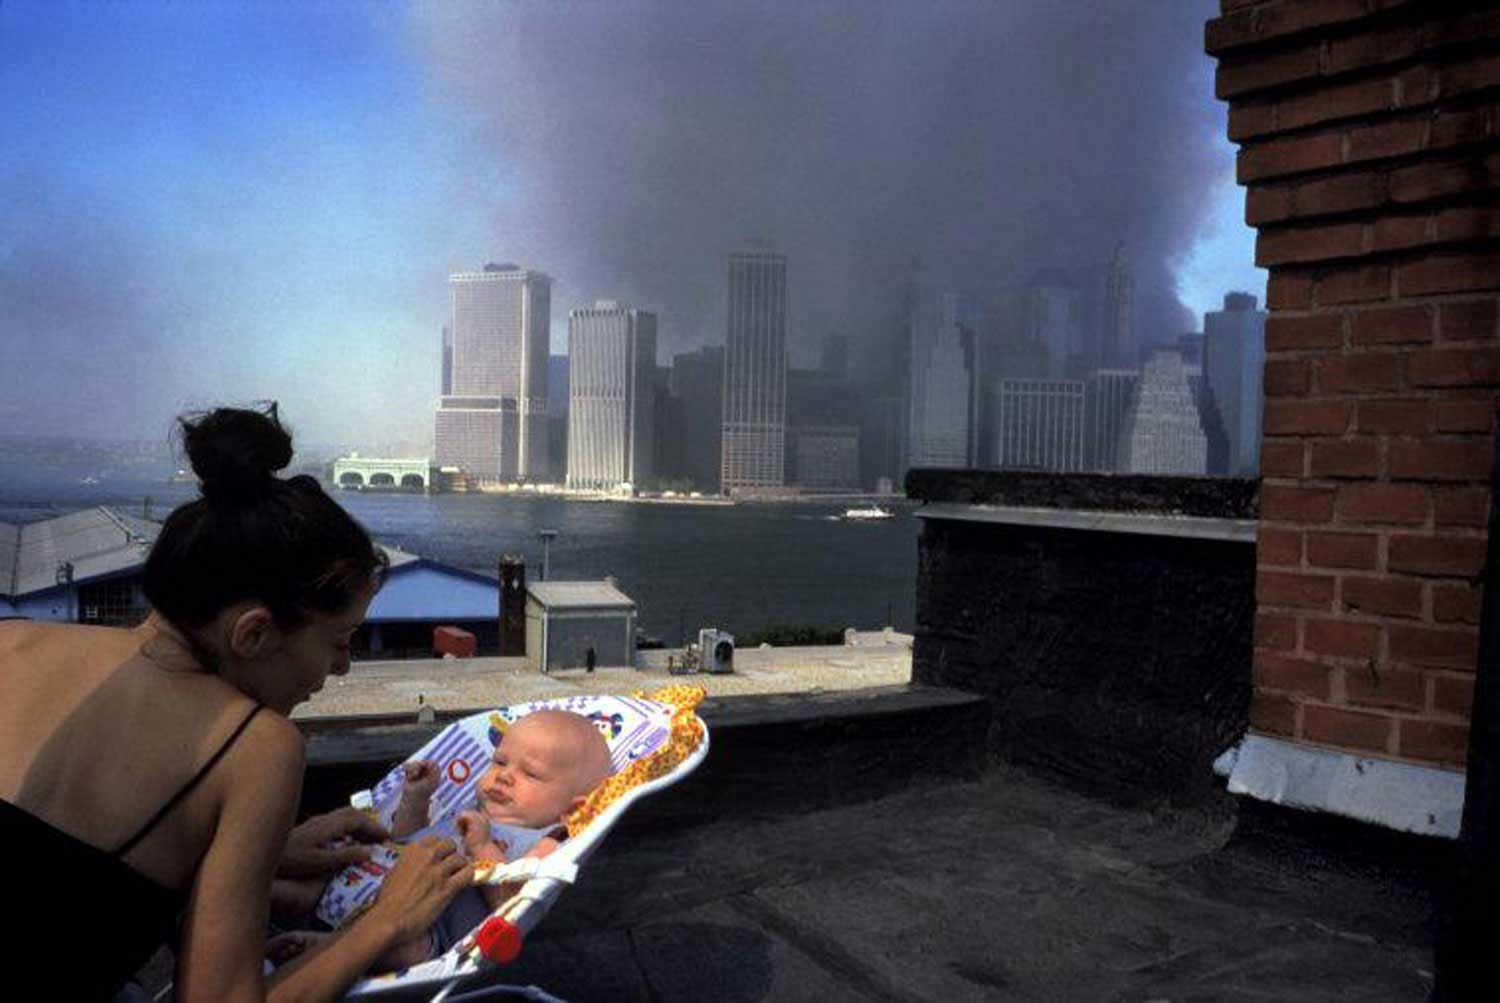 Alex Webb, photographer                                                               My wife Rebecca's and my first glimpse of lower Manhattan on September 11, 2001 was from a rooftop in Brooklyn Heights. That's where I took––probably on my first roll of film that day—what I consider my one singular image from Sept. 11—a mother and child with the smoldering ruins of the Twin Towers behind. It's a picture, in retrospect, that seems to me to suggest something about how life goes on in the midst of tragedy. Perhaps it also raises questions about what kind of future world awaits the child—and all of us. One reason this photograph continues to resonate with me is that the situation was different from violence that I'd witnessed in the past in places such as Haiti or Beirut. On September 11, 2001, not only was I photographing this particular mother and child in the city in which I lived, I was also aware of—out of the corner of my eye—another woman, my wife, the poet and photographer Rebecca Norris Webb. About an hour earlier and a few miles away in our apartment in Park Slope, Brooklyn, we were holding each other as we watched the second plane hit the second tower on our small TV. When I started to rush out the door with my cameras to head towards Manhattan, Rebecca—a photographer who has had little experience photographing conflict or violence—said she wanted to go with me. I balked. Shouldn't she stay in Brooklyn, away from the chaos of lower Manhattan? Perhaps I shouldn't even go—a startling notion for a photographer like myself who has covered situations of conflict in the past? And what might happen next to our city on that terrible morning? What if we were separated and unable to communicate during another wave of violence? Amid the chaos and the uncertainty, we chose to stay together and do one of the few things we know how to do—respond with a camera. Looking back ten years later, I'm not sure I would have seen this particular photograph—with its note of tendern